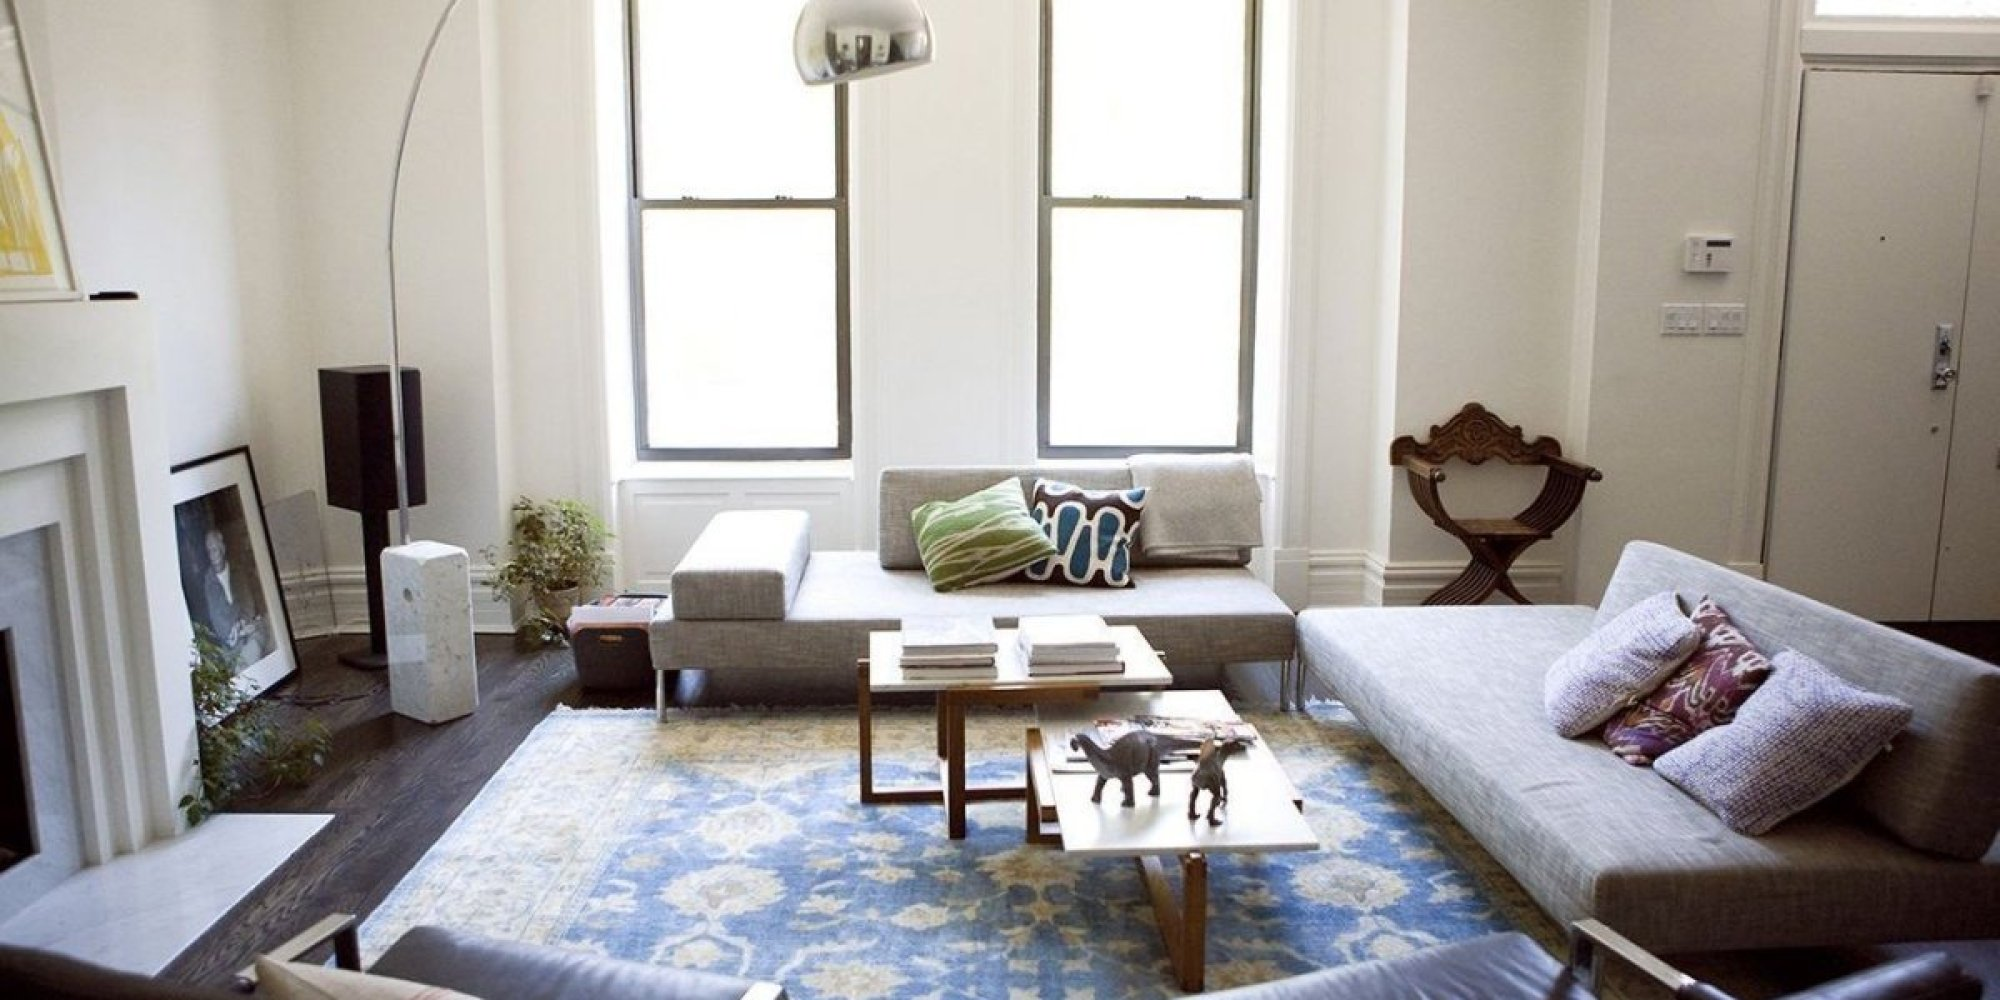 12 Simple Ways To Make Your Home Look More Expensive How